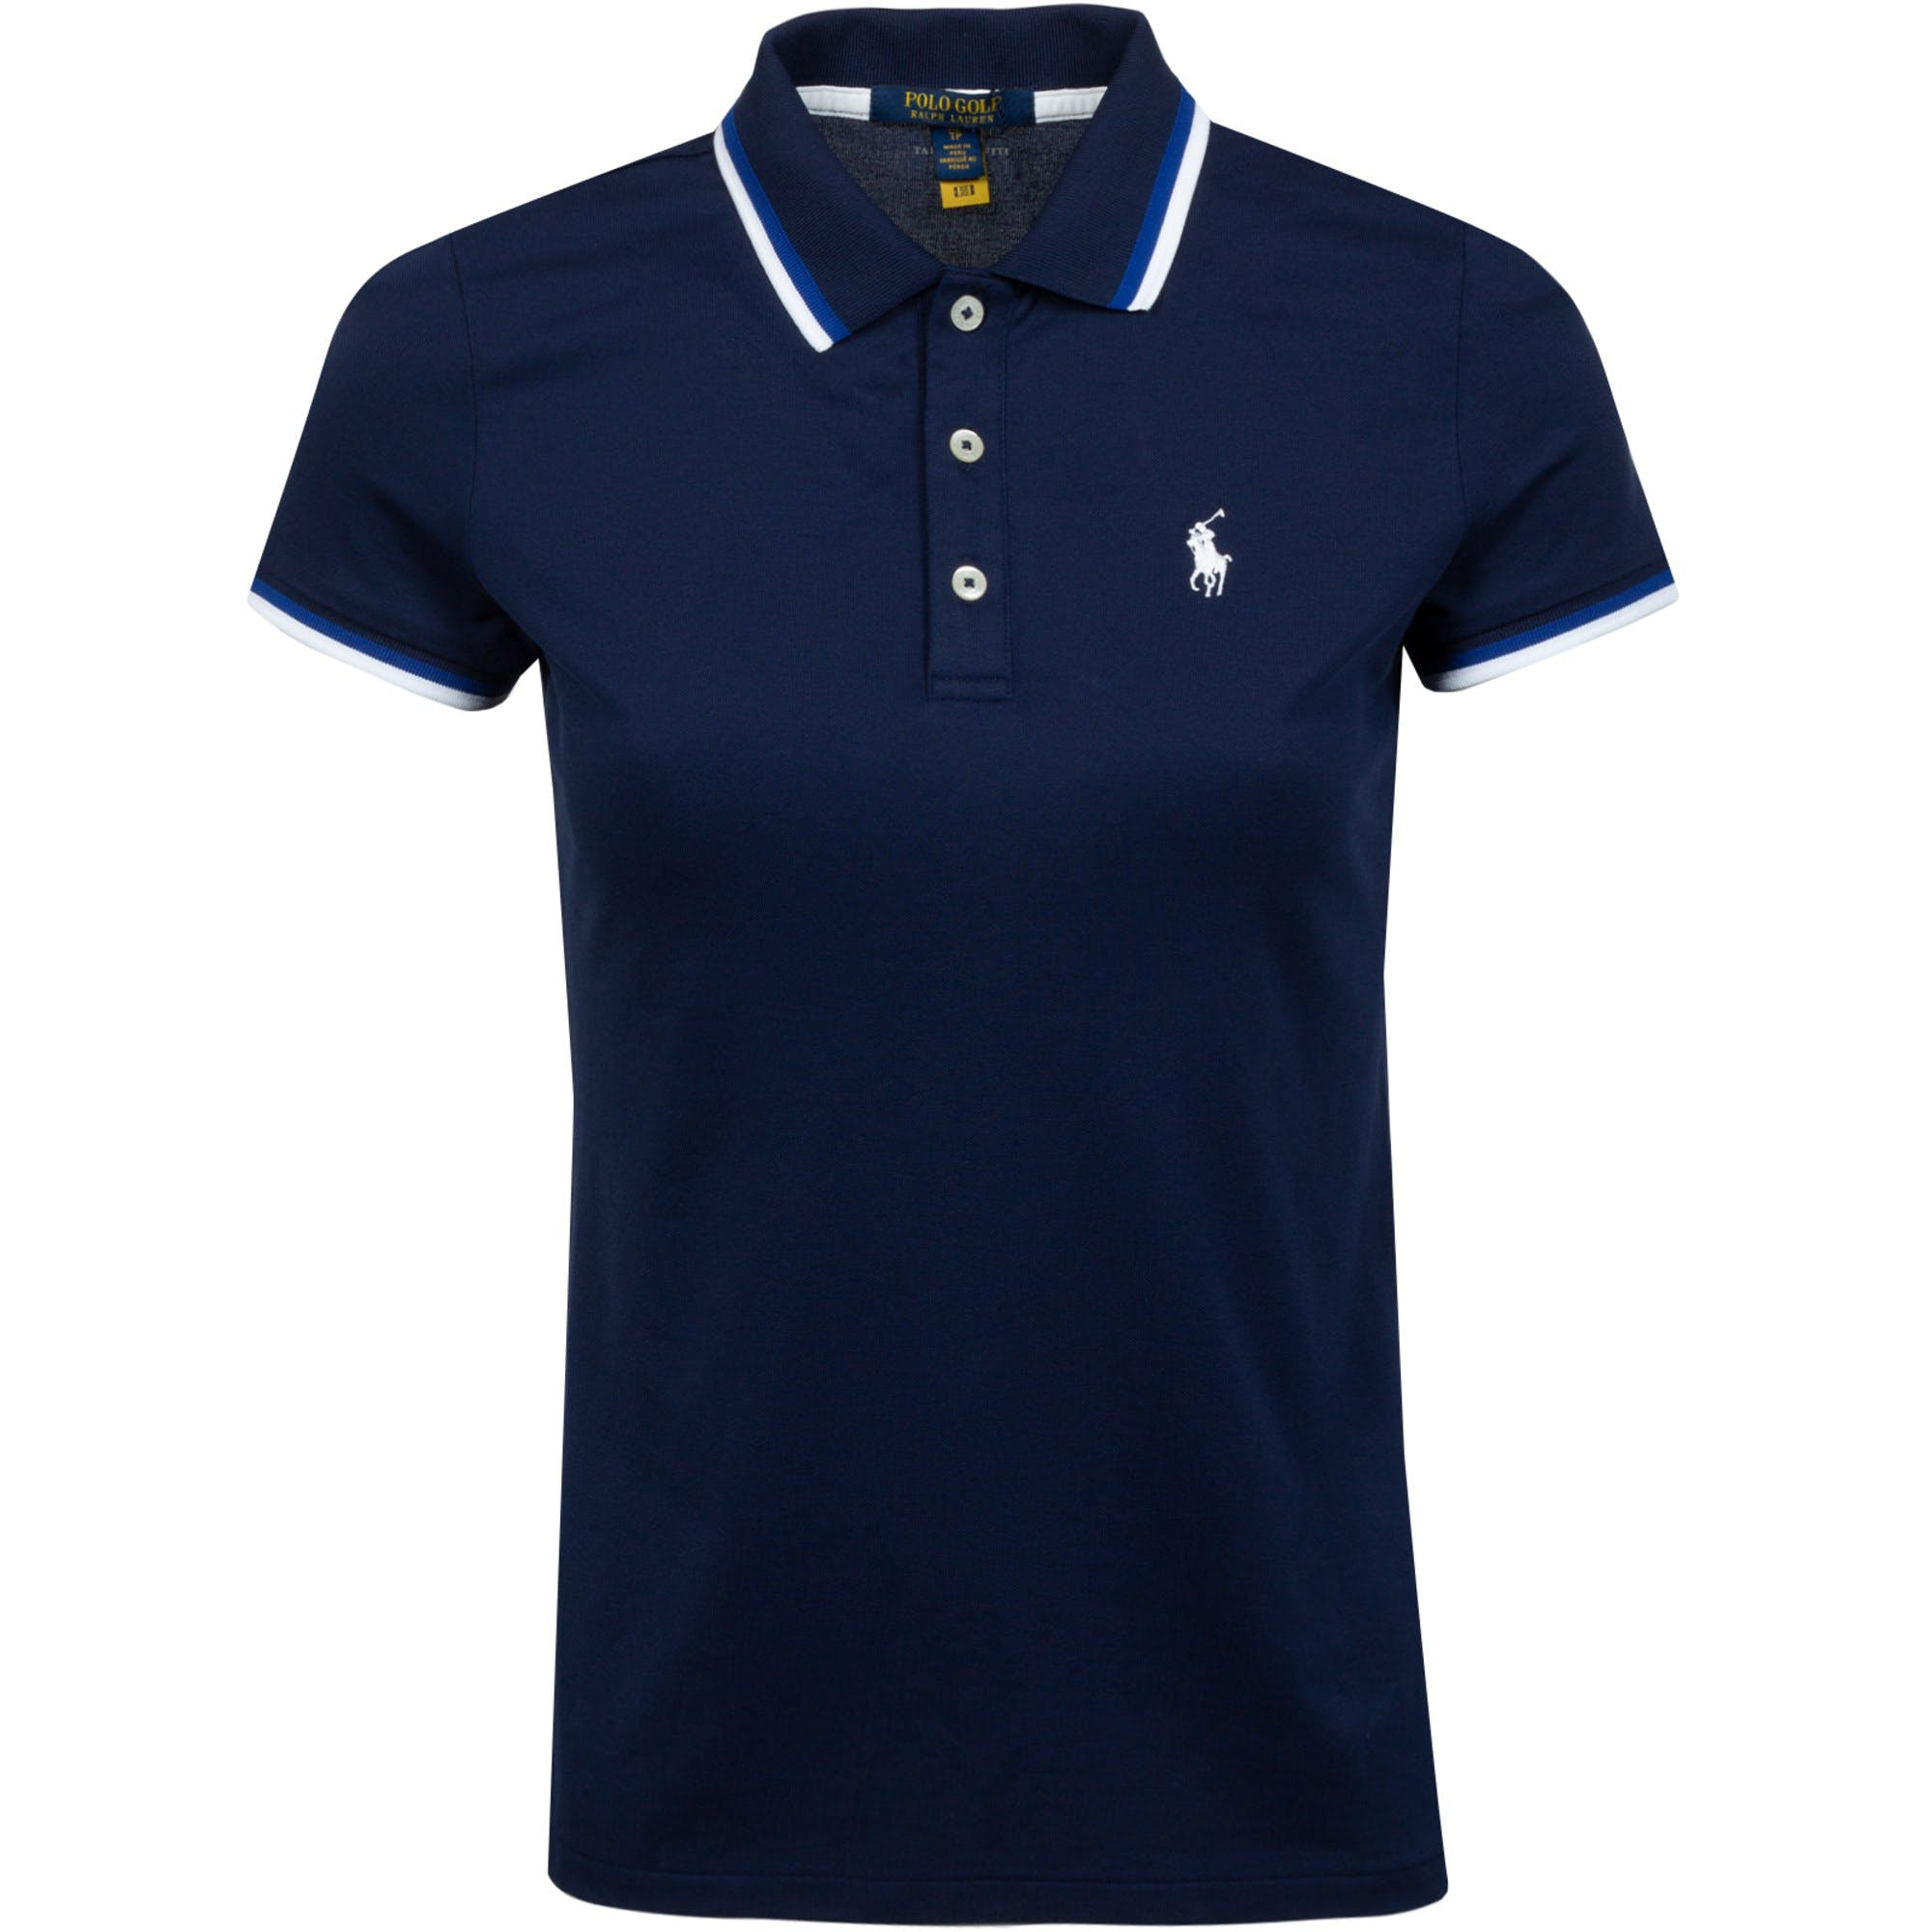 Womens Val Polo Shirt French Navy - SS21